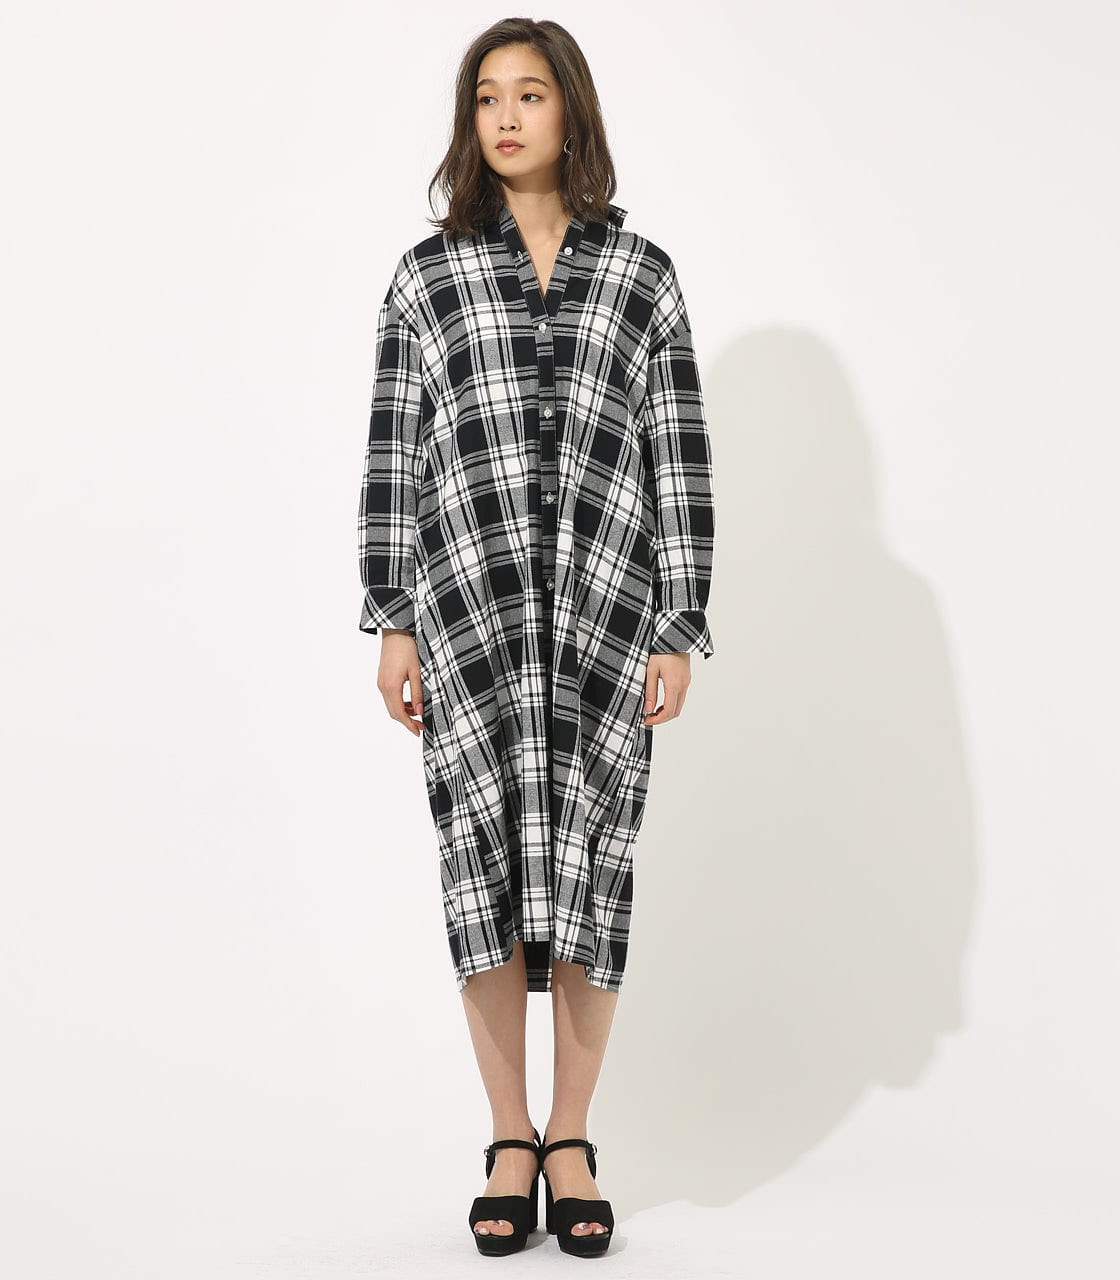 【AZUL BY MOUSSY】CHECK ONEPIECE 詳細画像 柄BLK 4